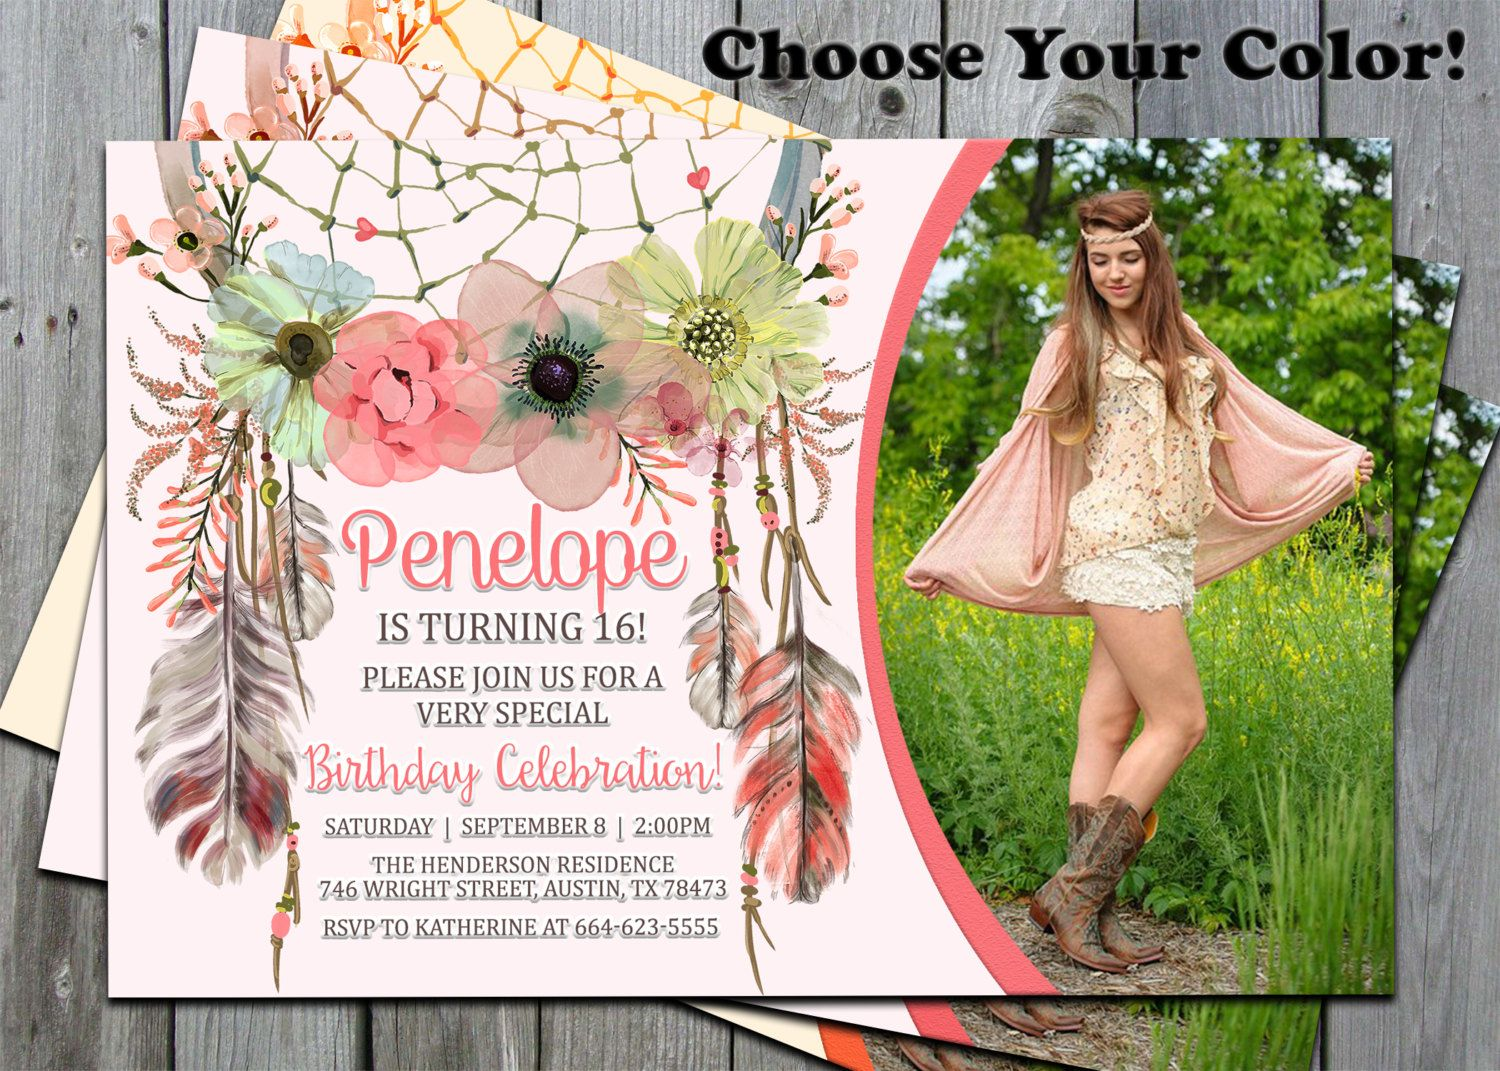 happy birthday invitation pictures%0A Dreamcatcher Invitations  Dreamcatcher Birthday Invitation  Boho Birthday  Invitations  Tribal Invitations  Bohemian